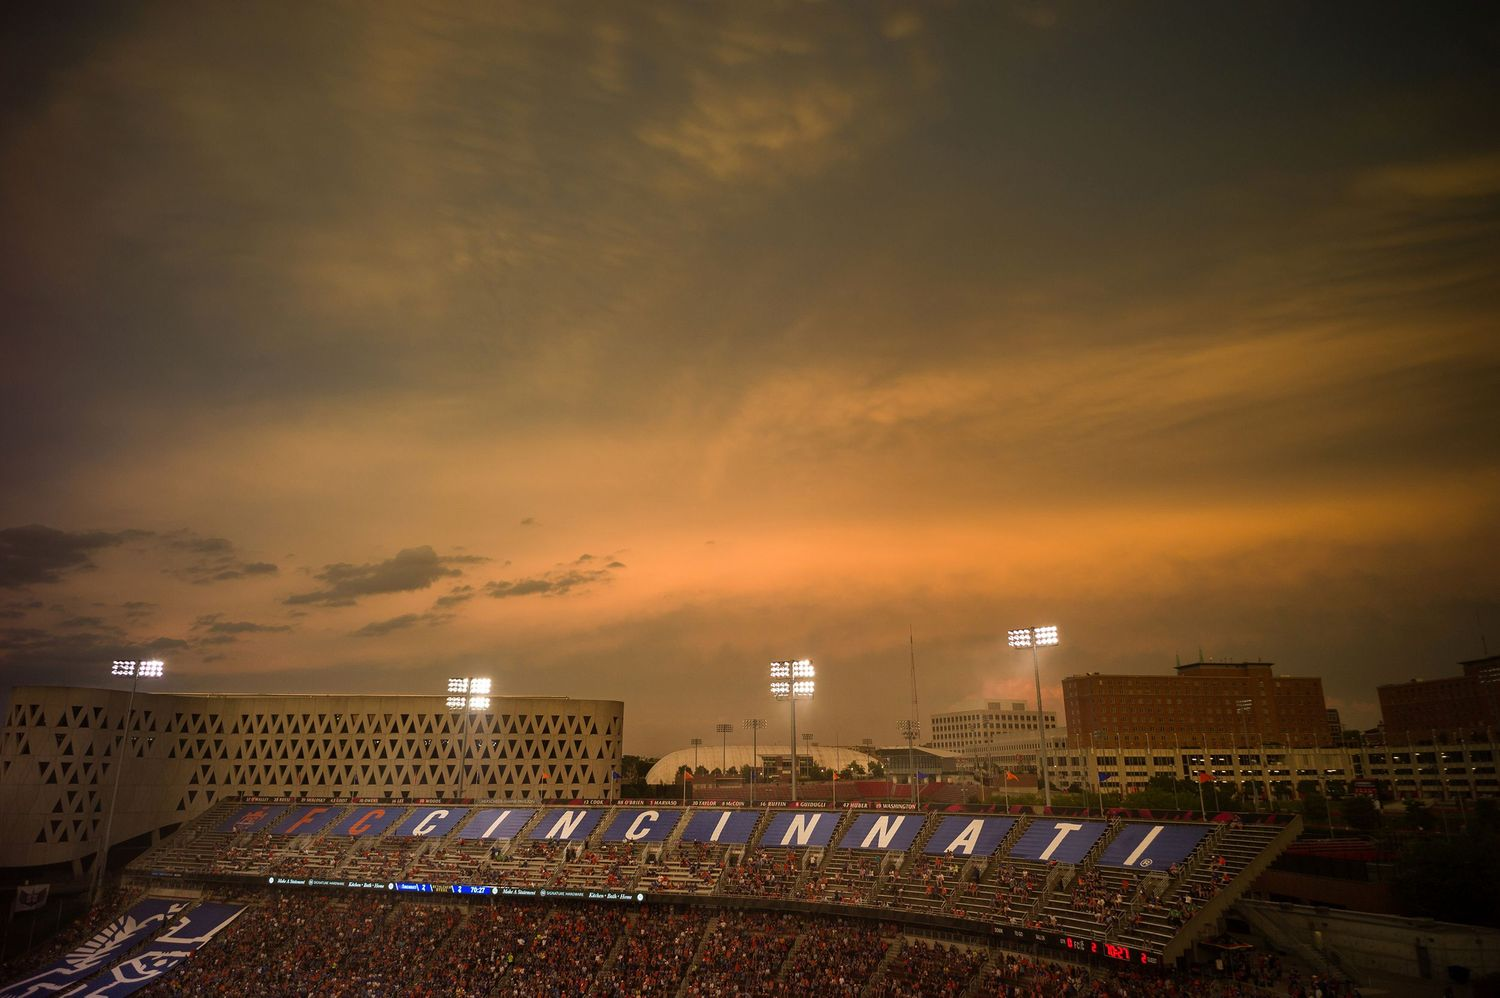 sun shone on the clouds as the lights came on at Nippert Stadium, in the University of Cincinnati, at a FC Cincinnat